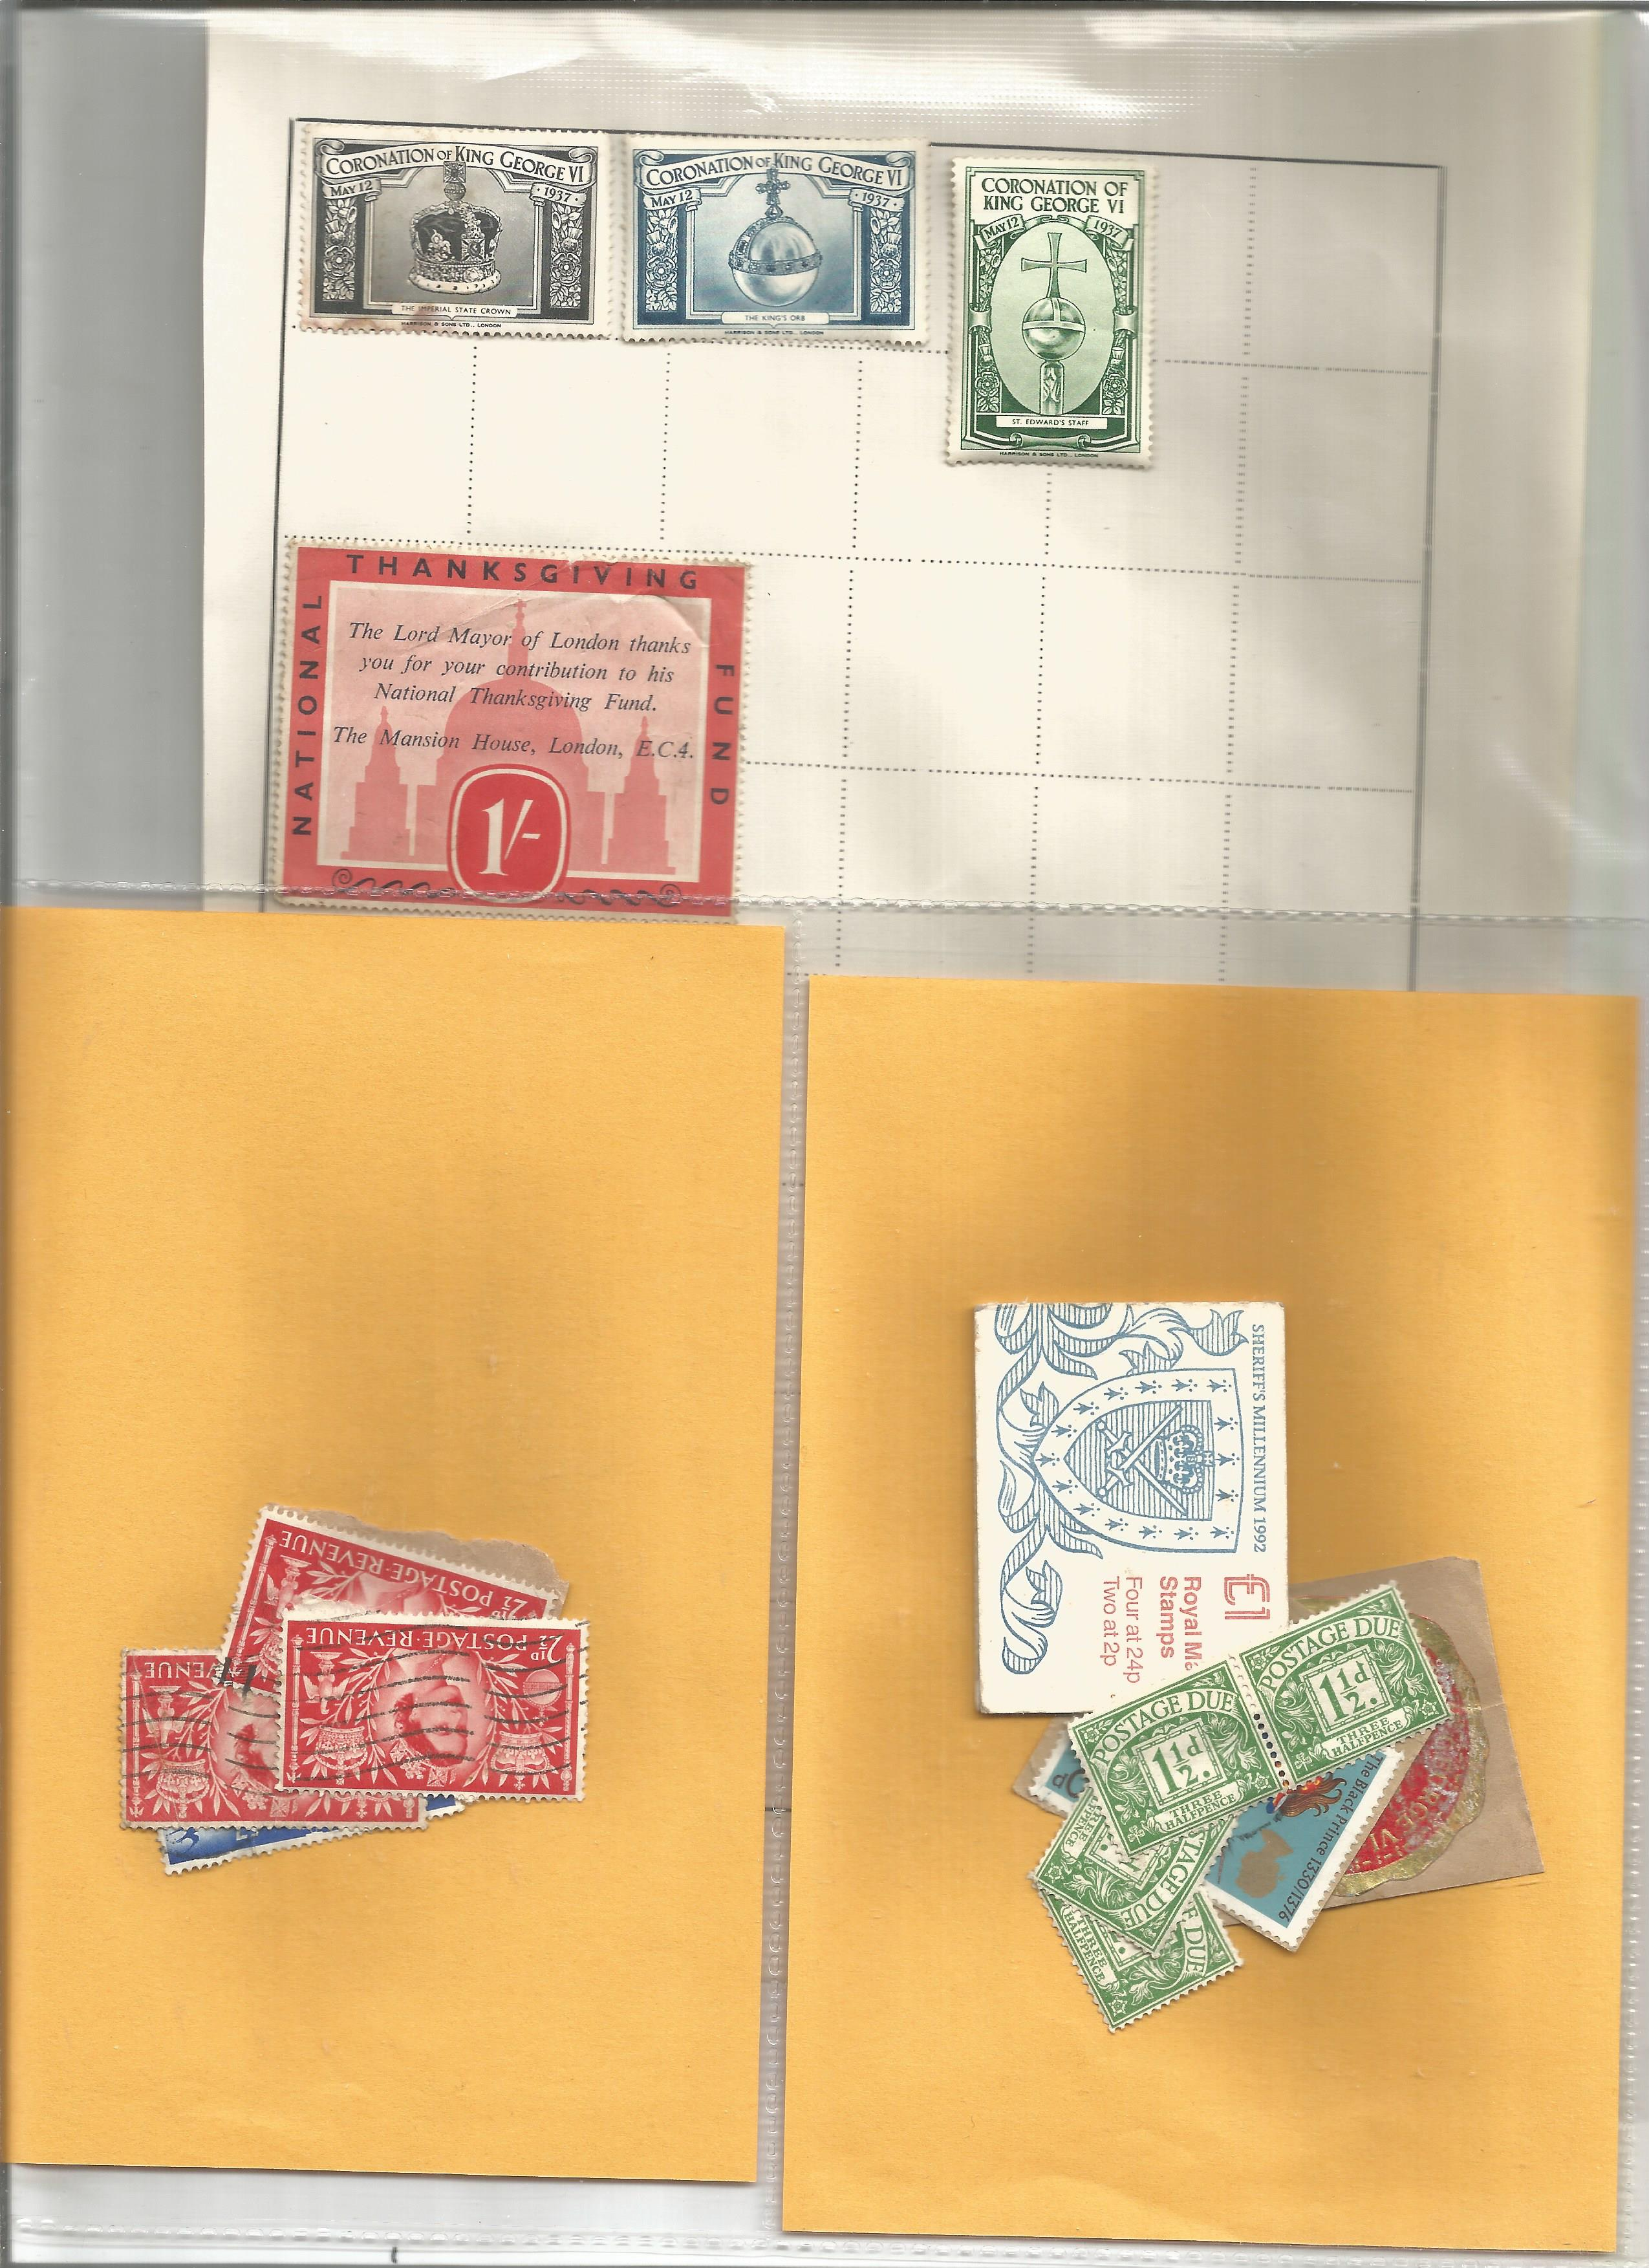 Glory folder, containing GB paquebot postcard, GV stamps and GVI stamps. 4 GB Cinderella stamps. - Image 3 of 3